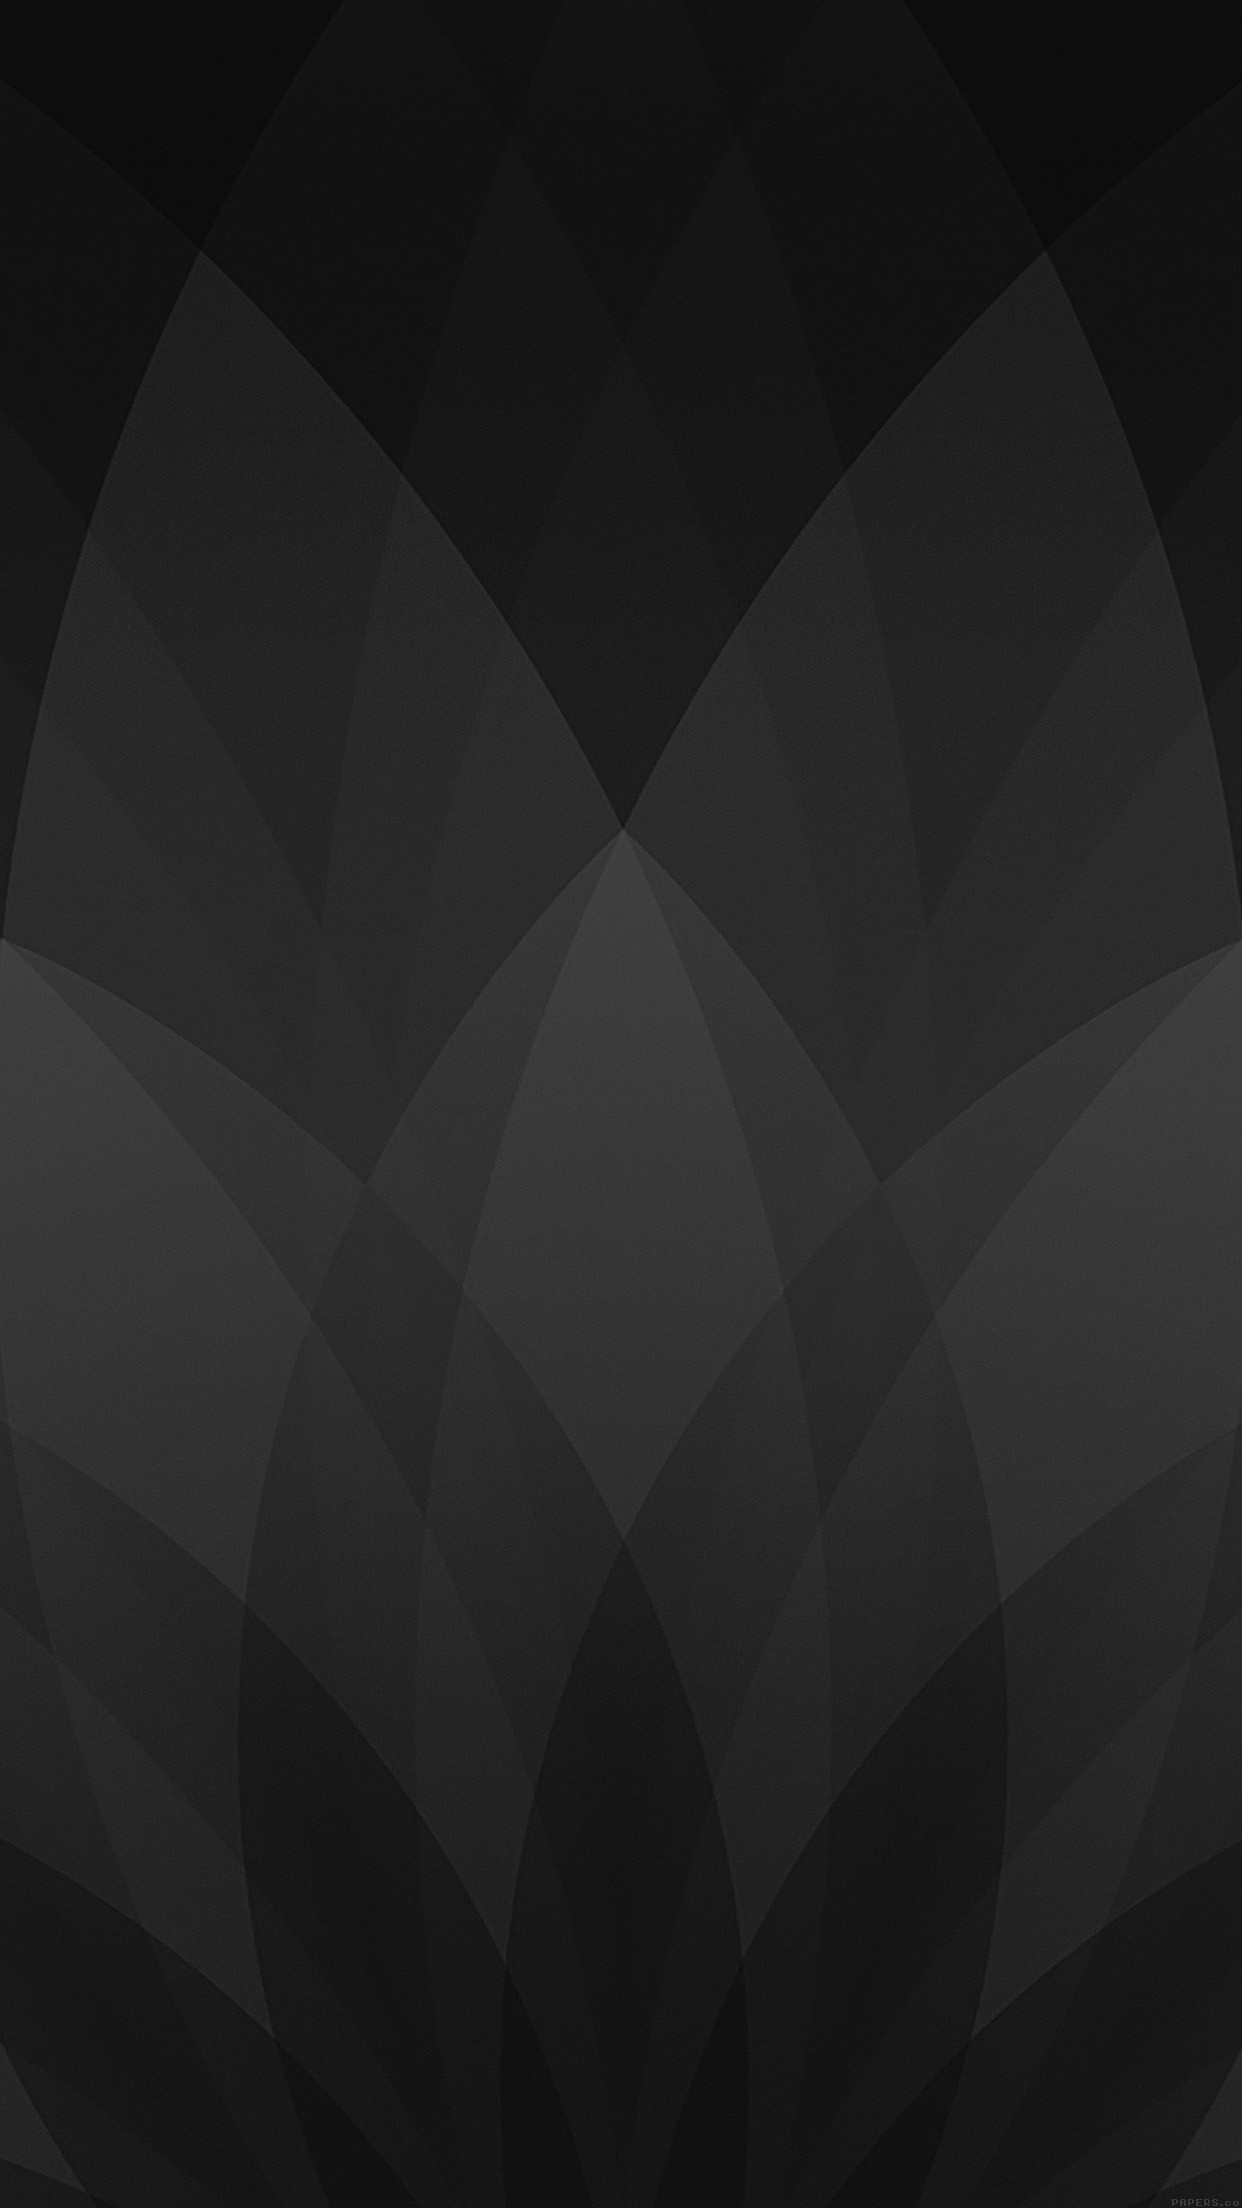 1242x2208 sofa-black-texture-pattern-34-iphone-7-plus-